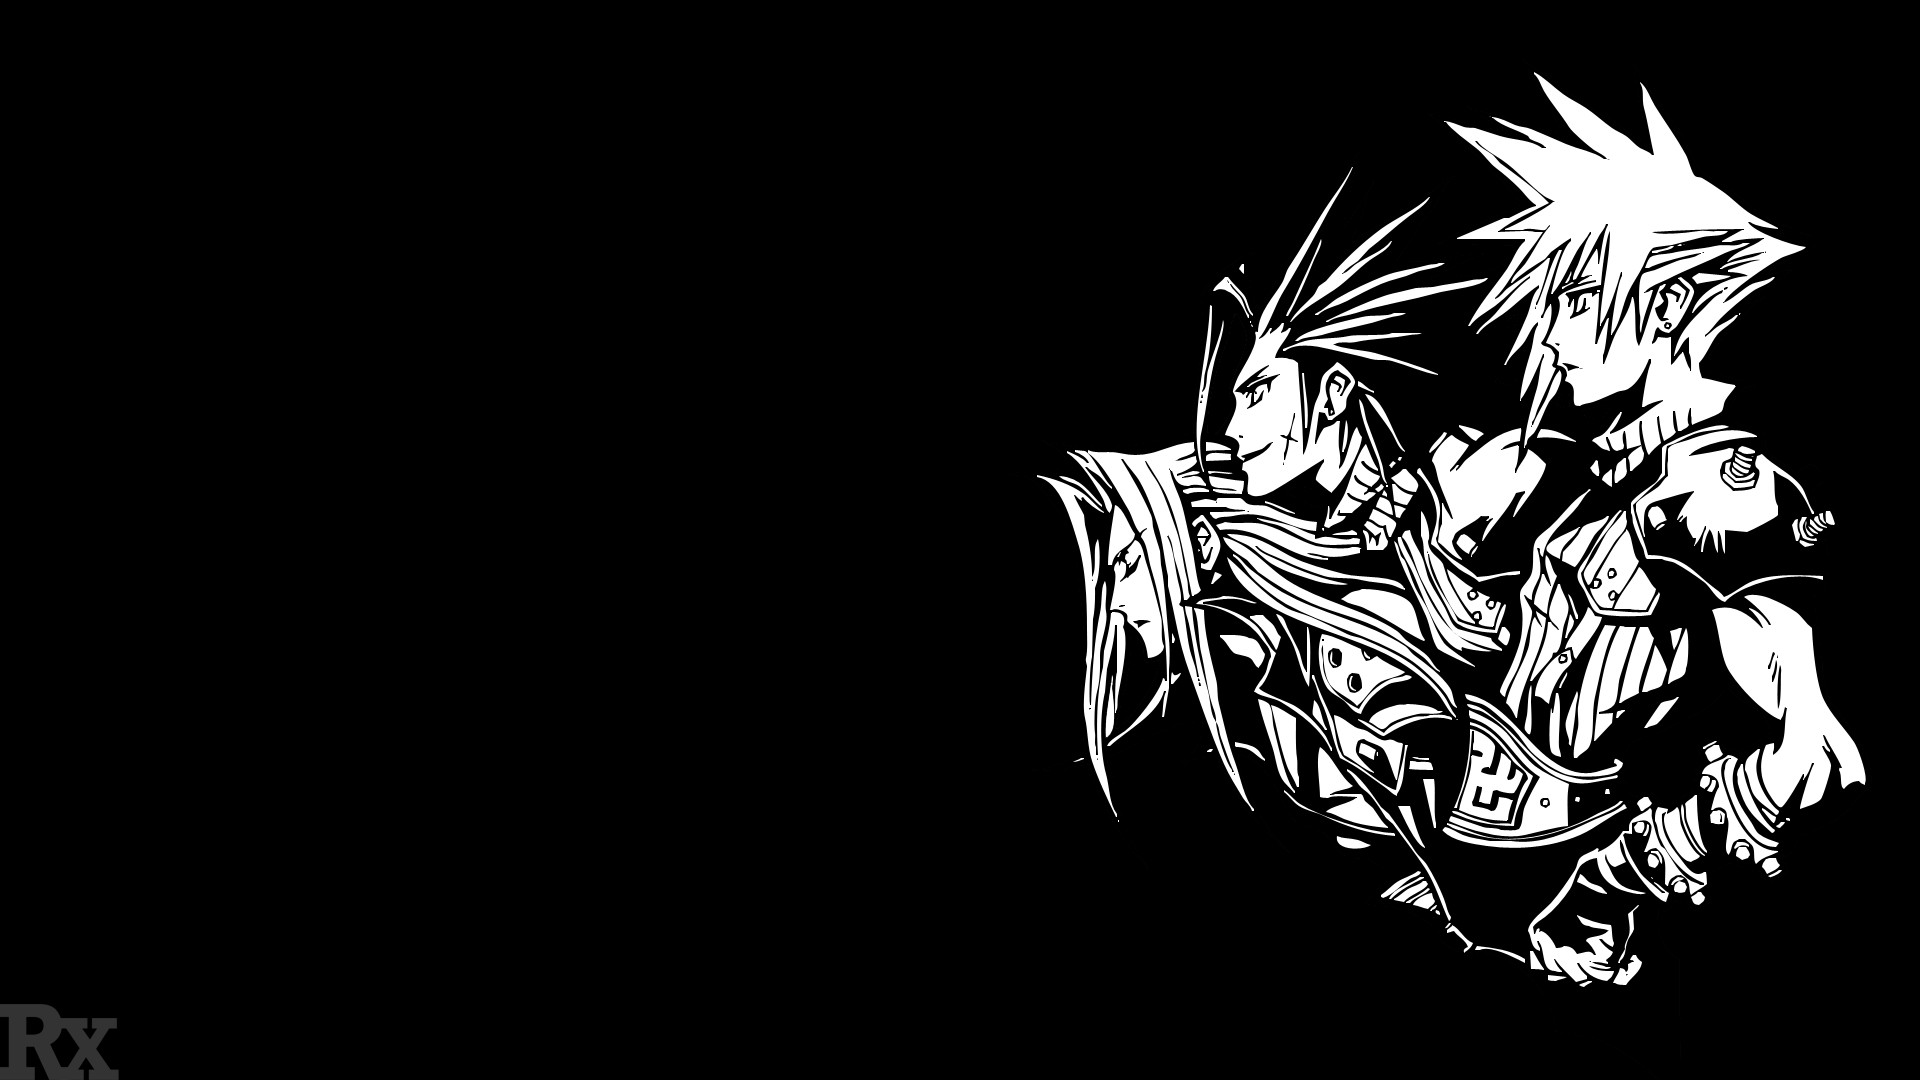 1920x1080 ... RaileysXerilyasRX Final Fantasy VII - 10th Anniversary Logo by  RaileysXerilyasRX